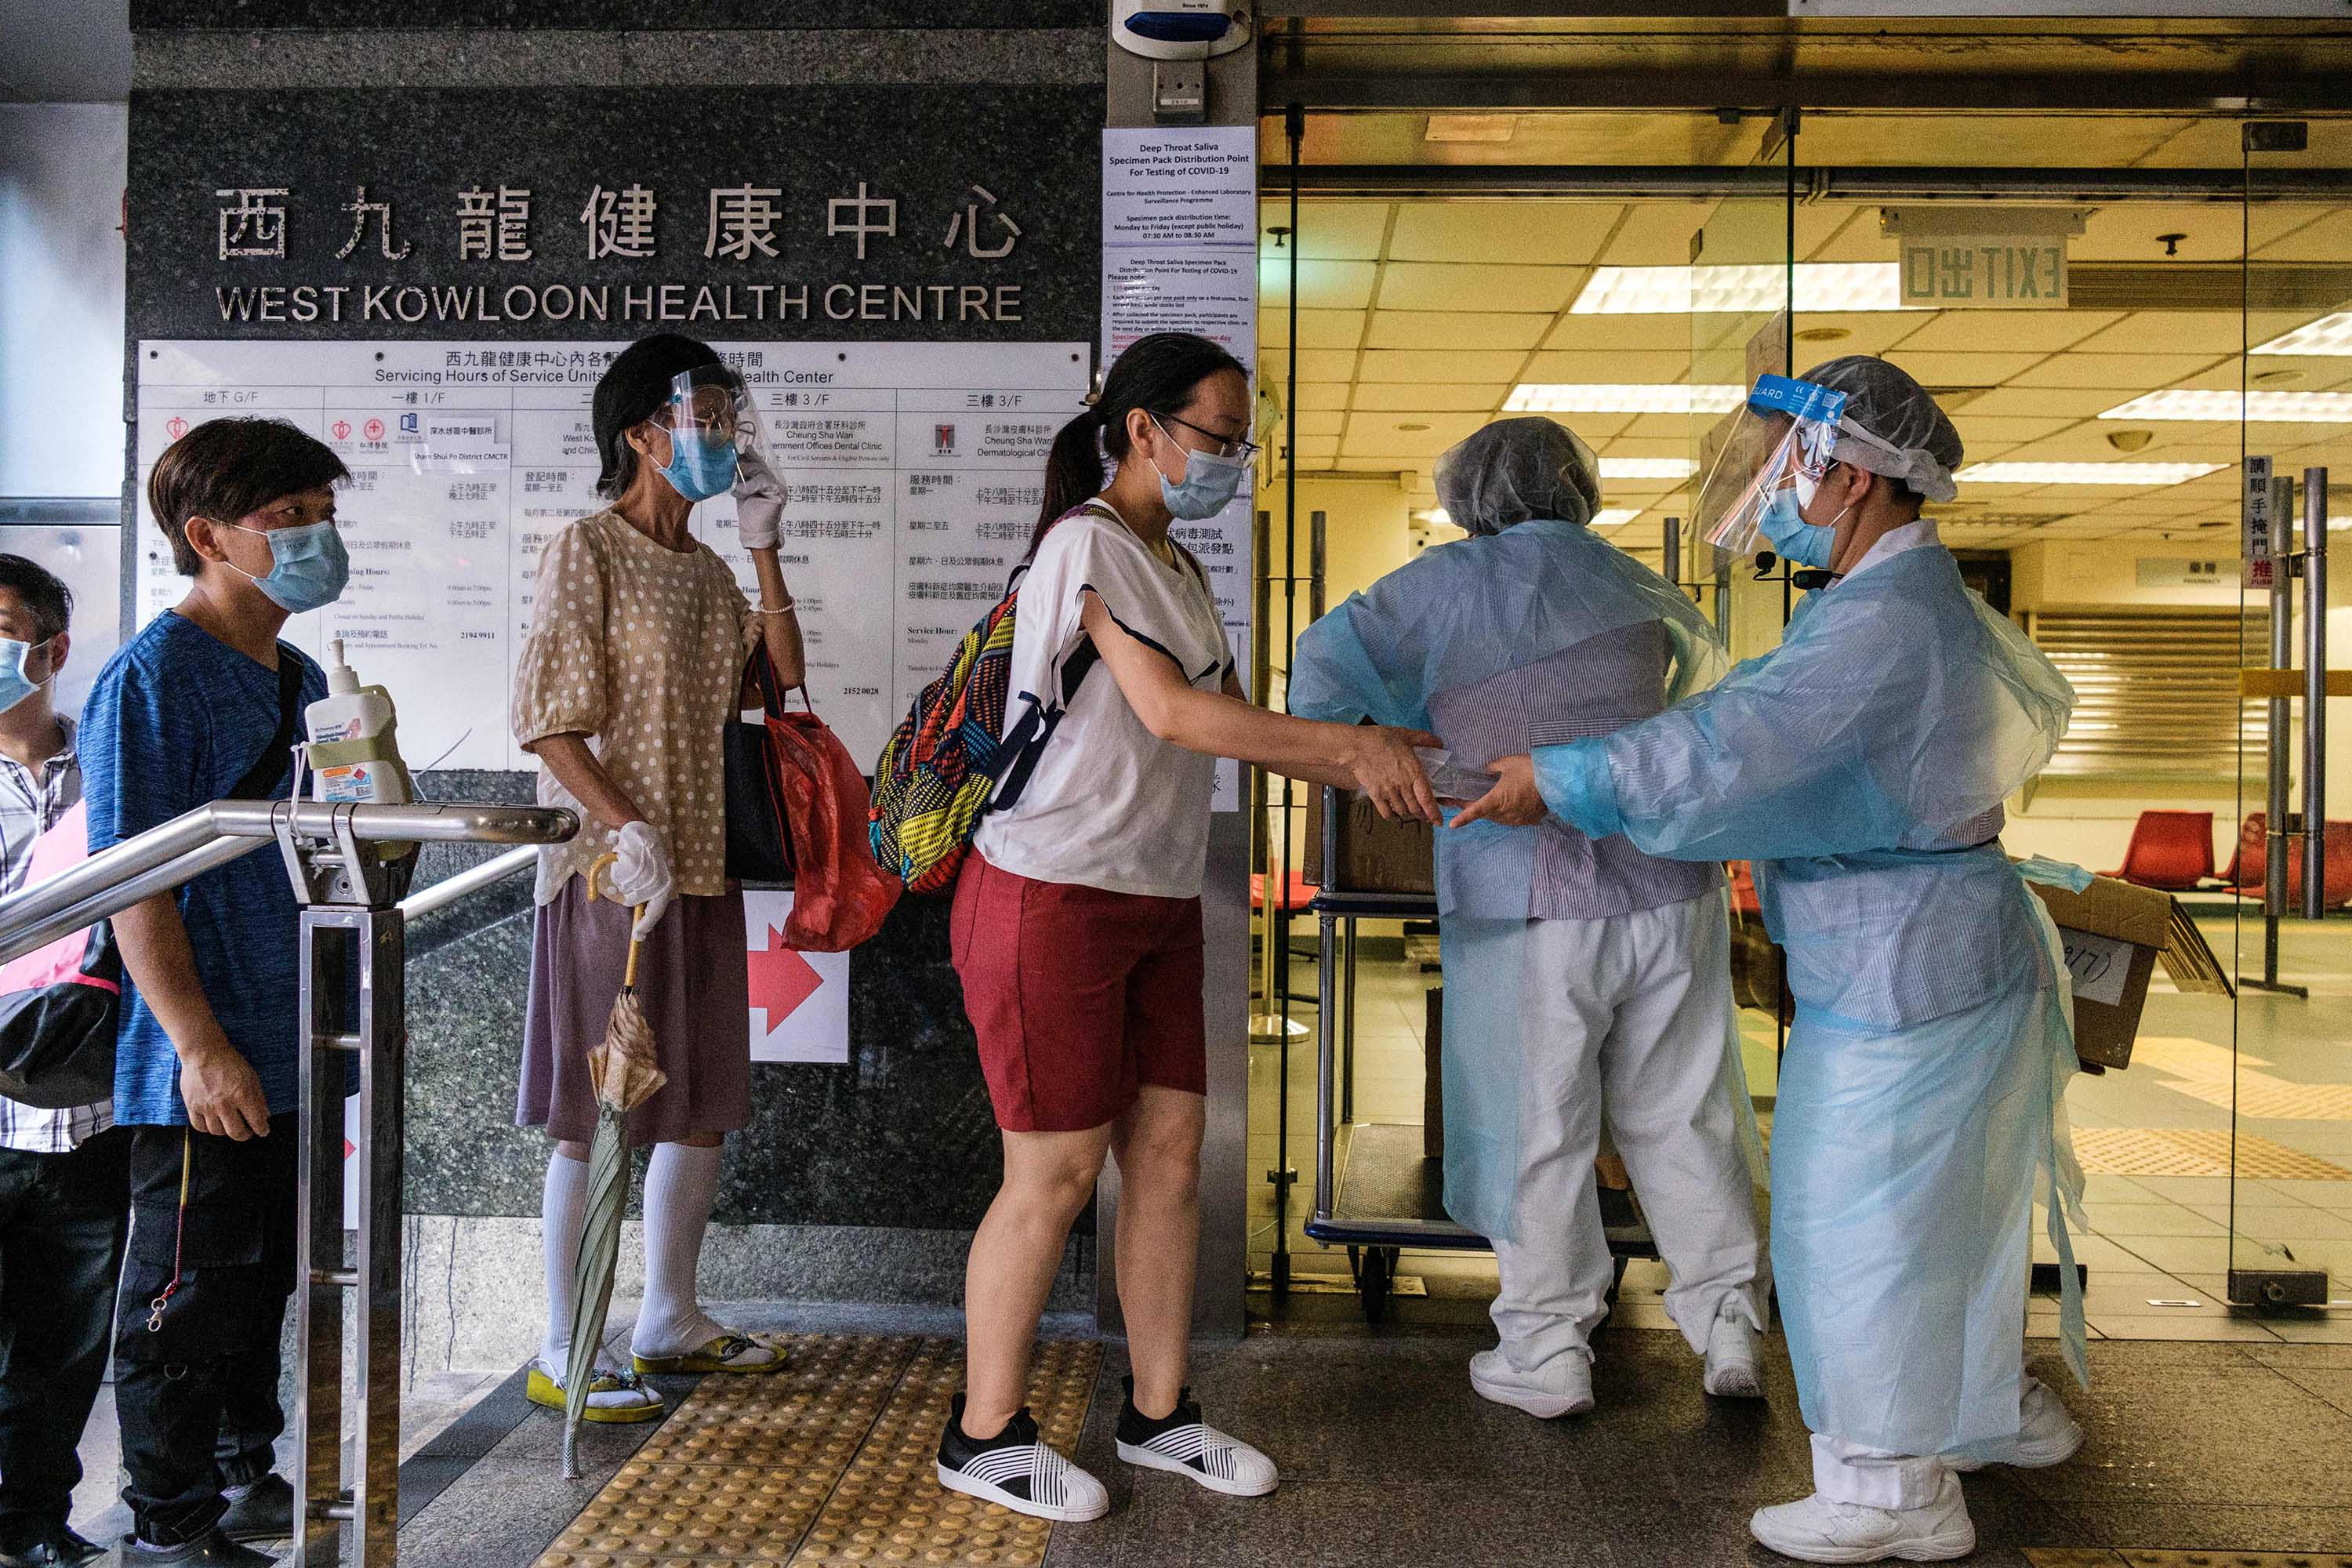 Residents are given free Covid-19 test kits by workers at a government clinic in Hong Kong on Wednesday, July 29, 2020, as part of a city-wide testing initiative.